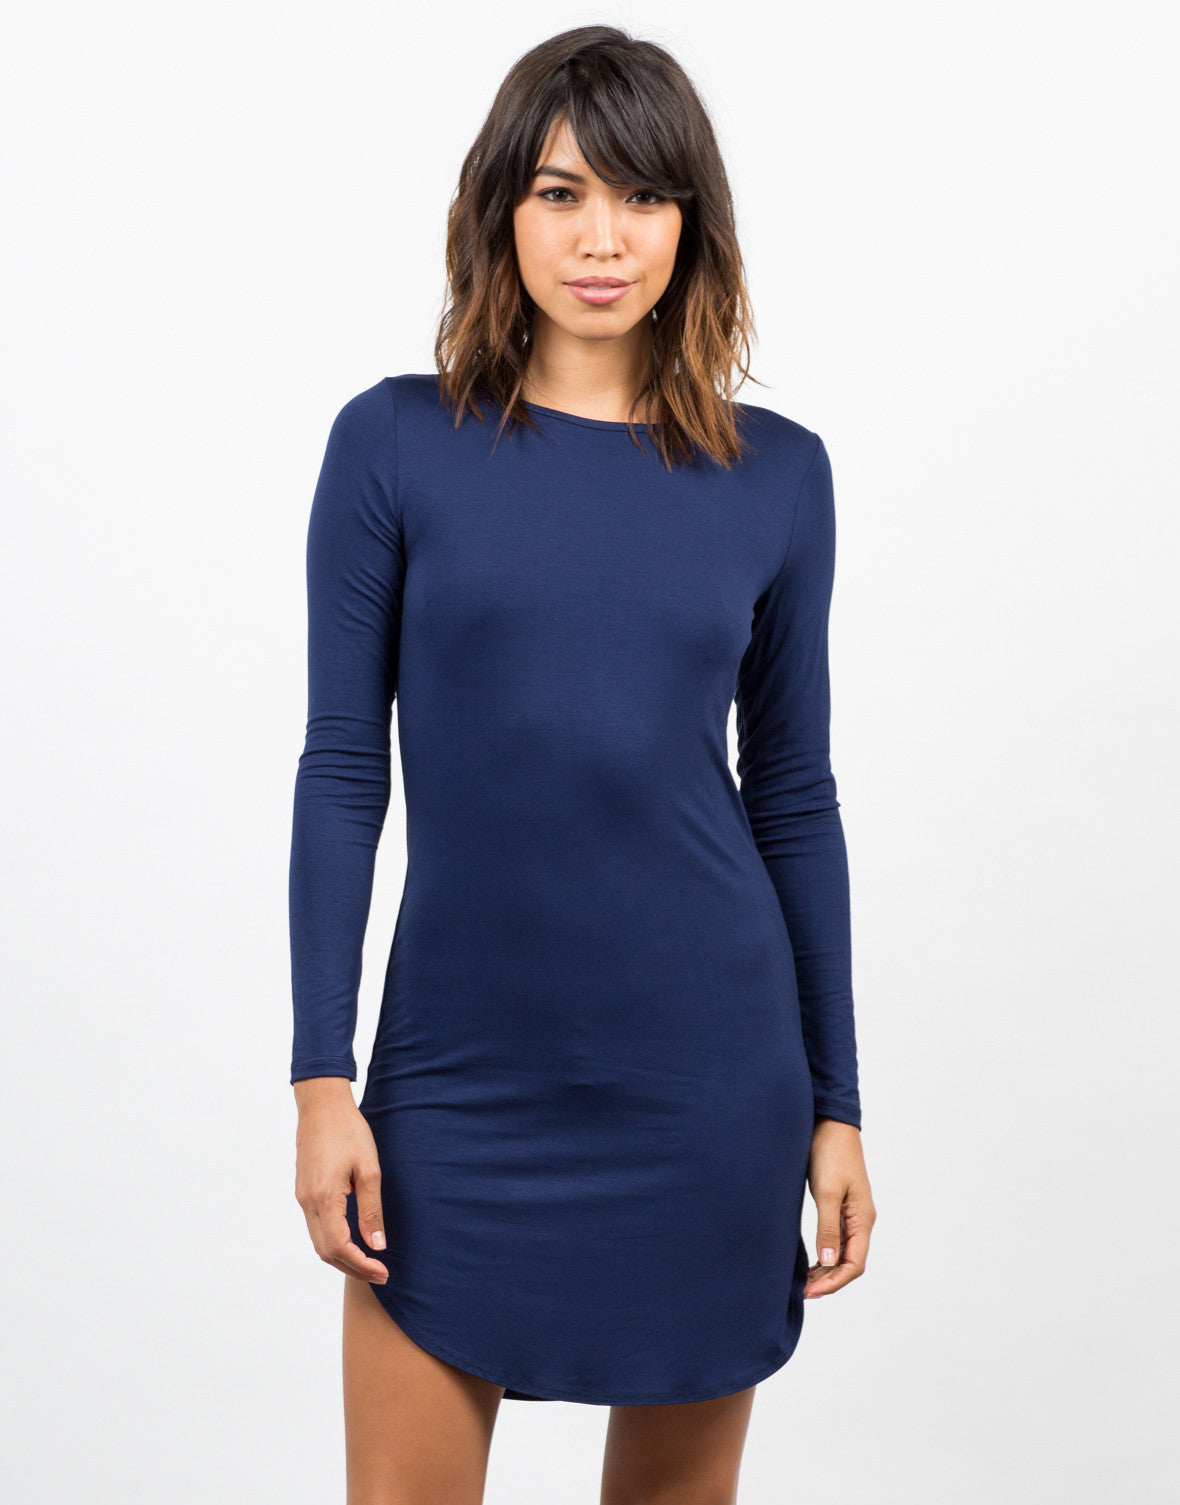 Front View of Long Sleeve T-Shirt Dress